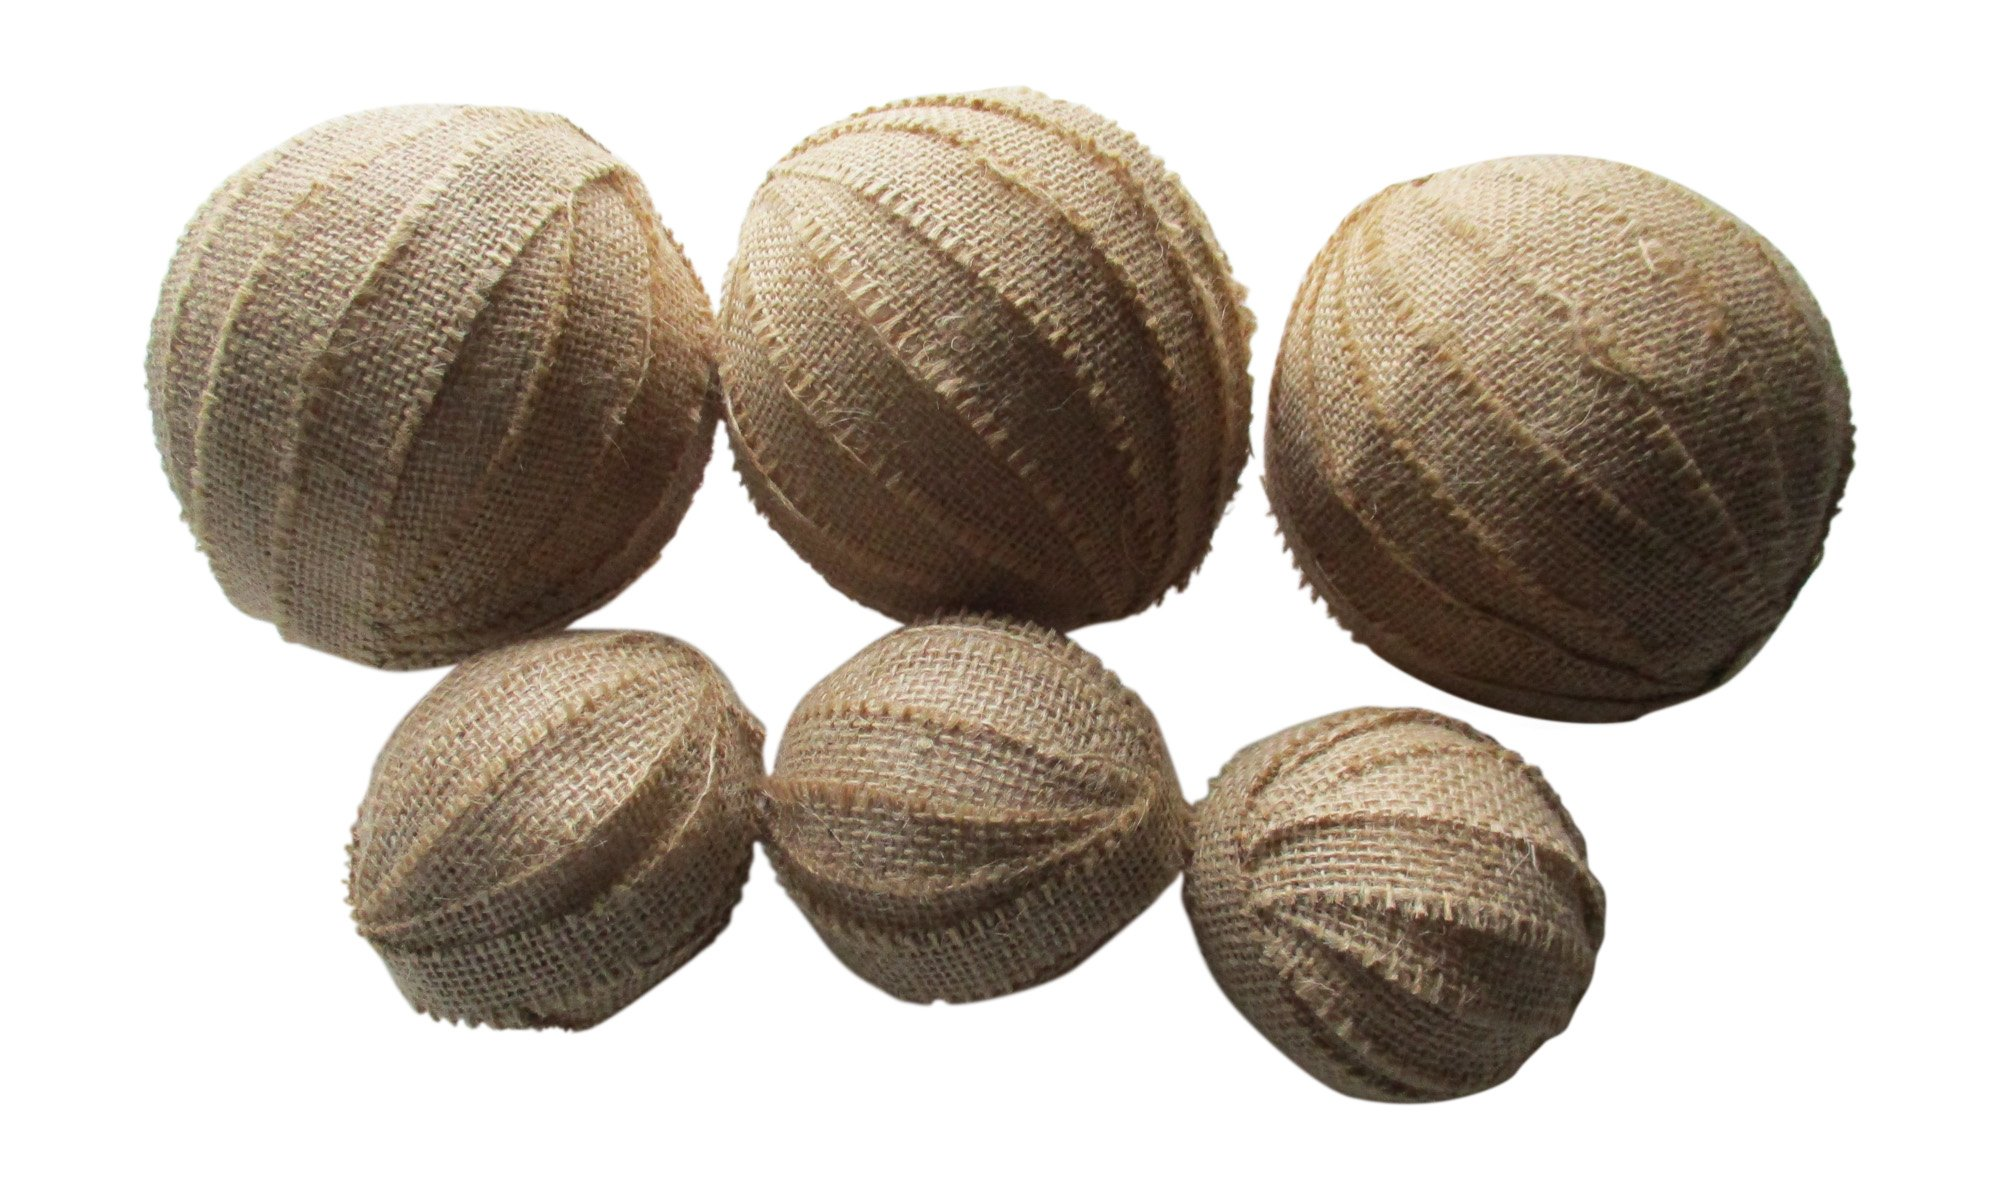 From The Attic Crafts Burlap Rag Balls Decorative Bowl Fillers 4 inch and 2.5 inch set of 6 by From The Attic Crafts (Image #1)